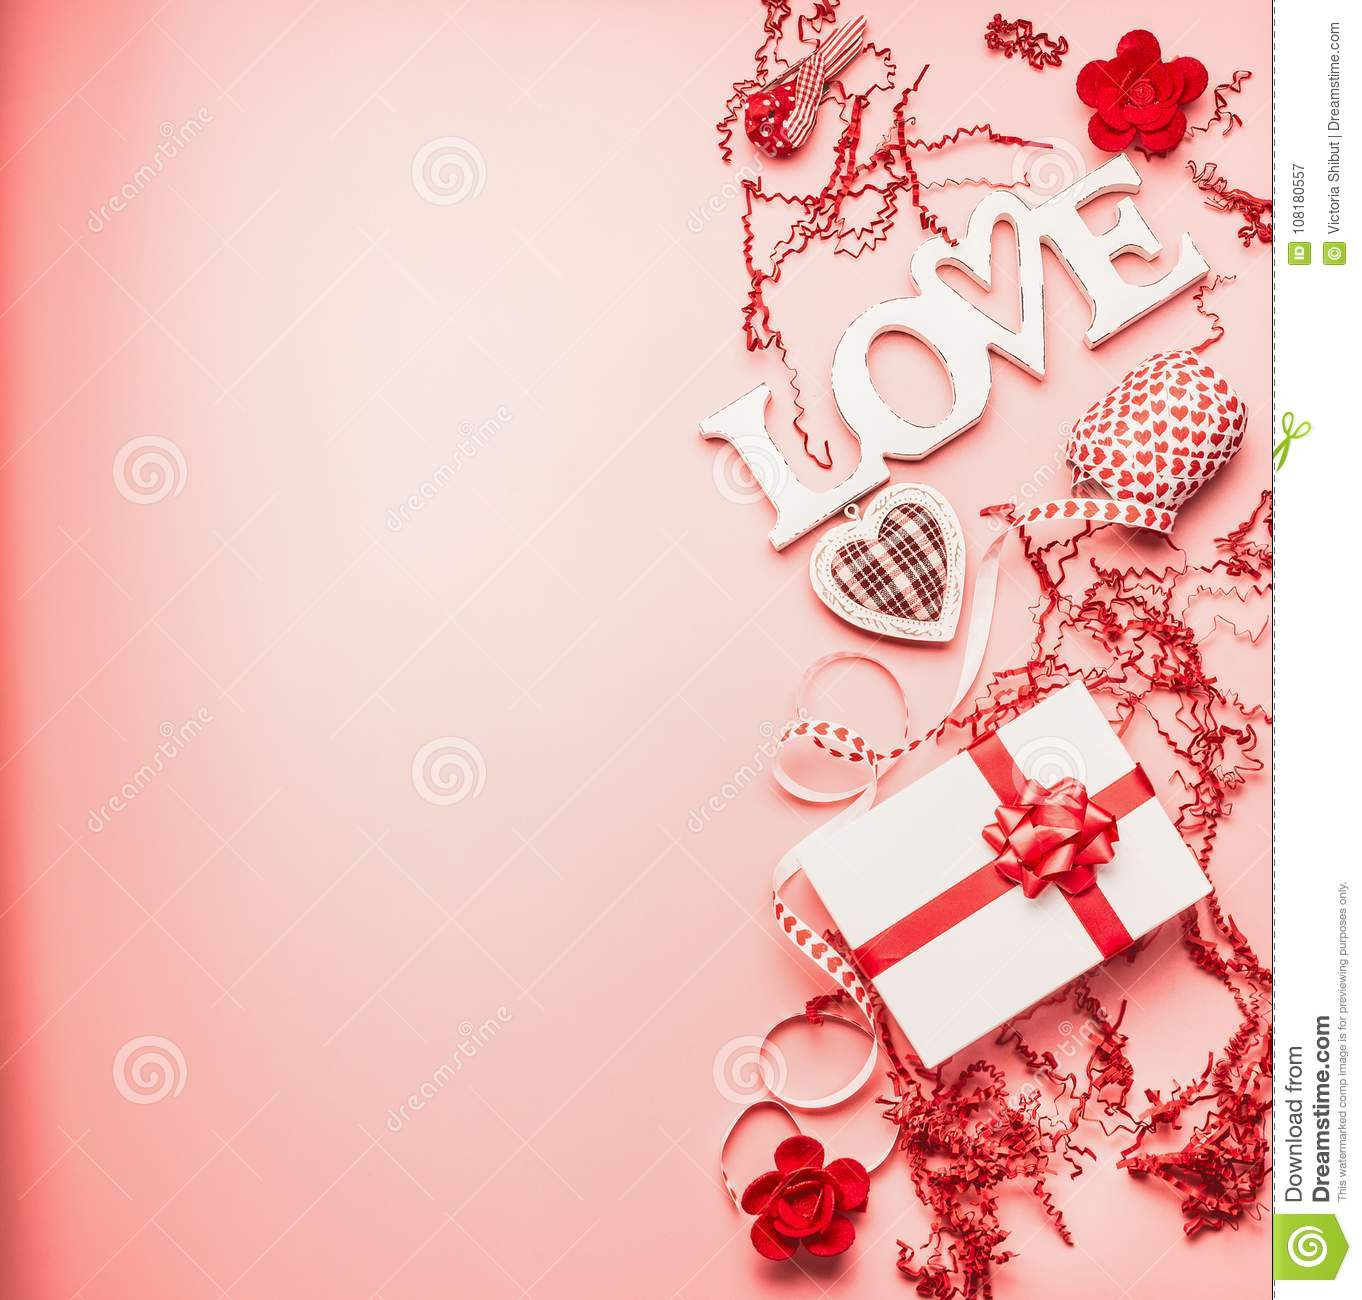 Lovely Valentines Day Background With Word Love Gift Box Hearts